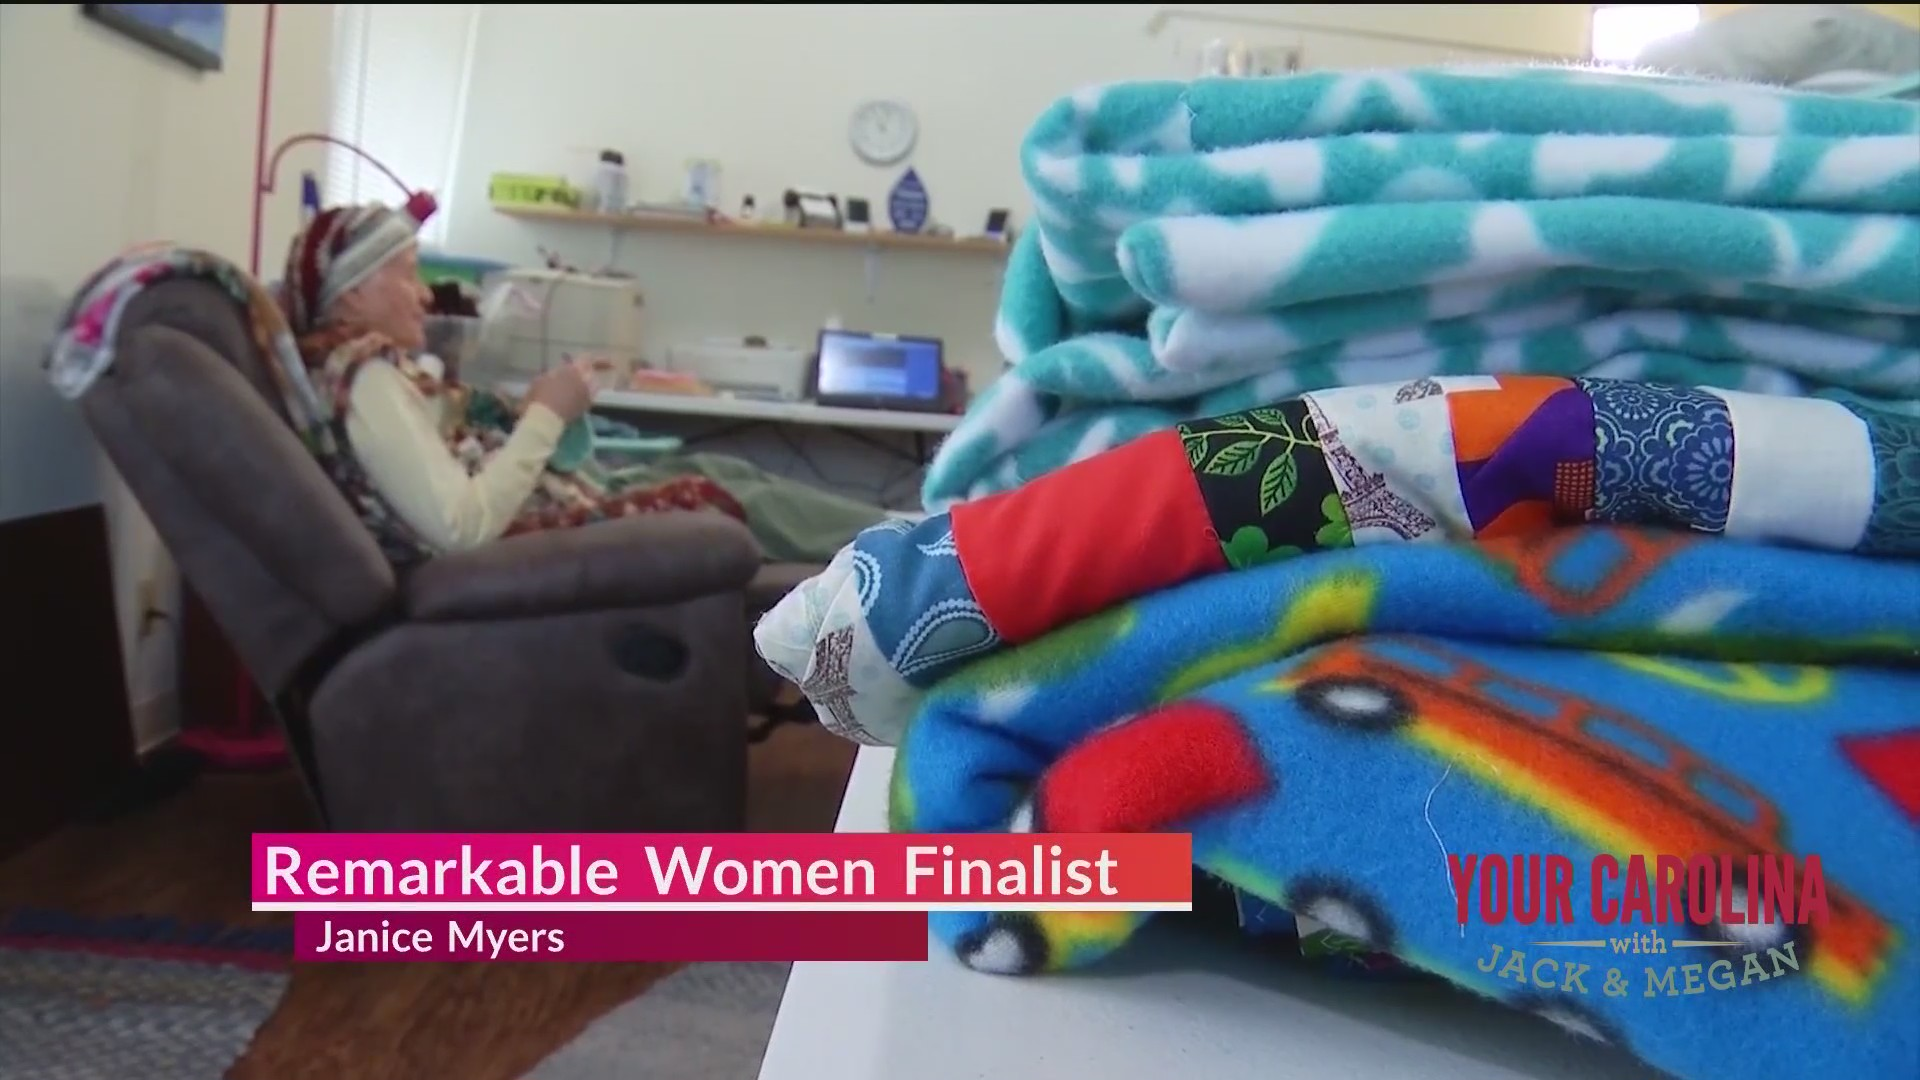 Meet Remarkable Women Finalist Nominee Janice Myers